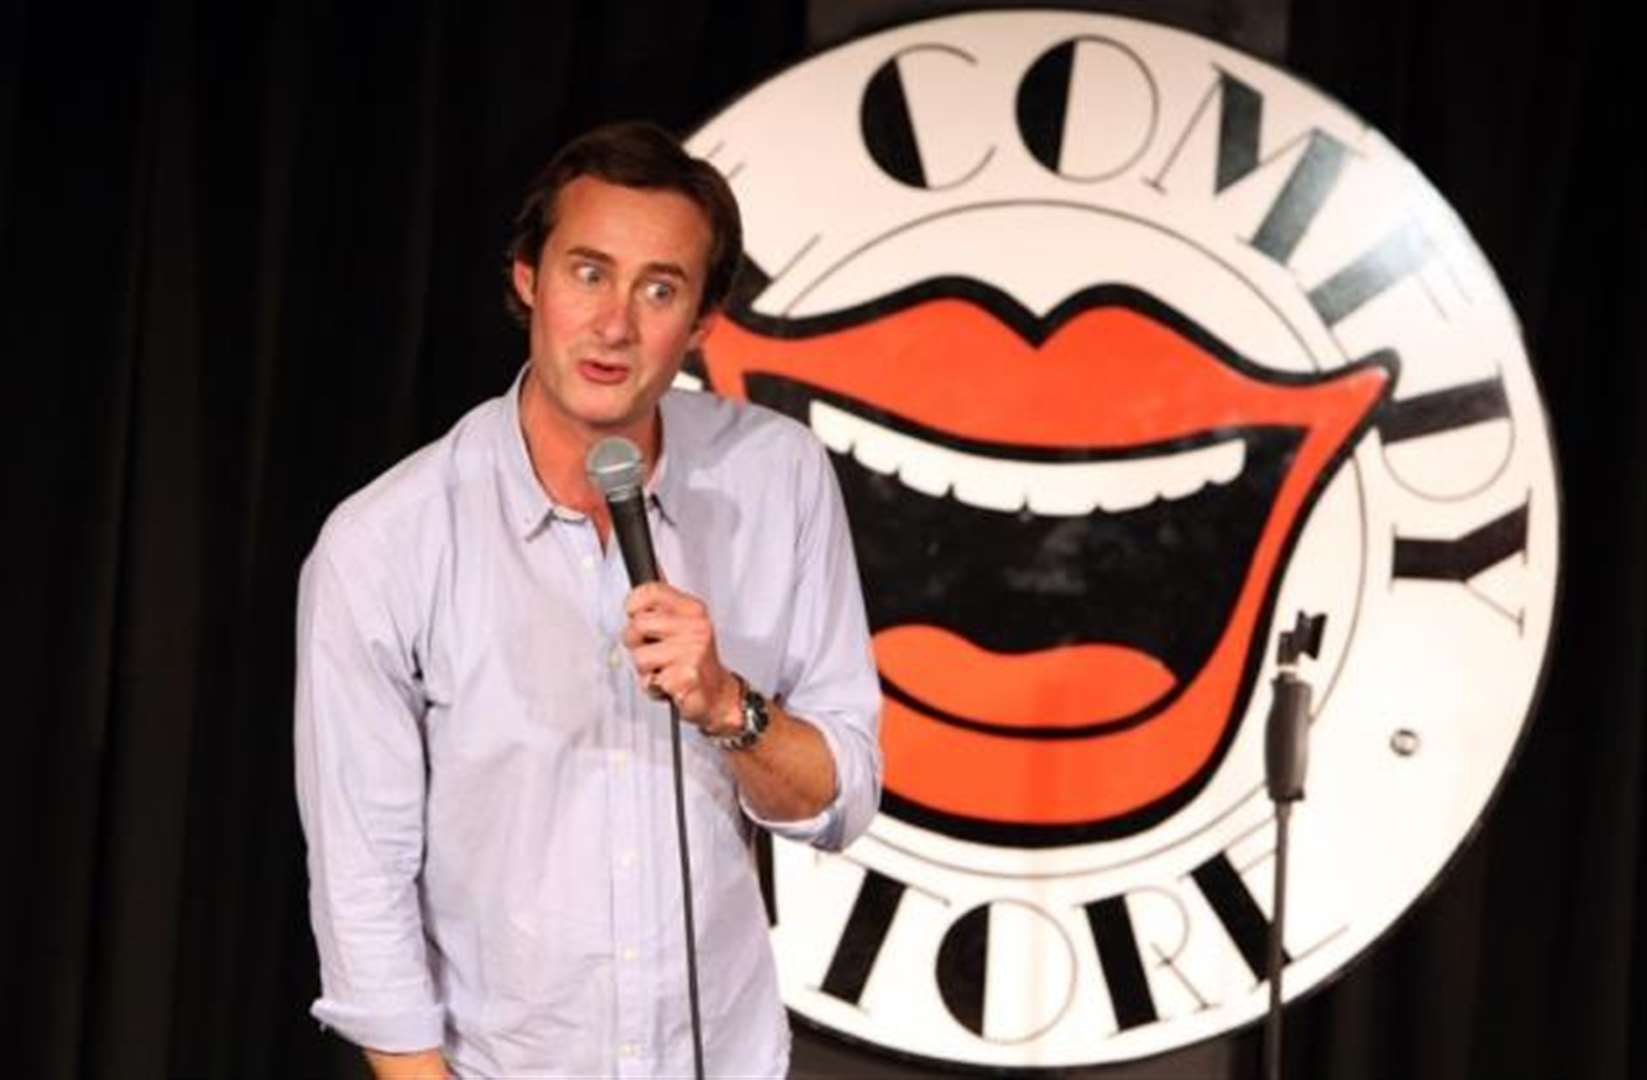 Globe-trotting Gordon Southern headlines Stortford's Laughing Bishops Comedy Club